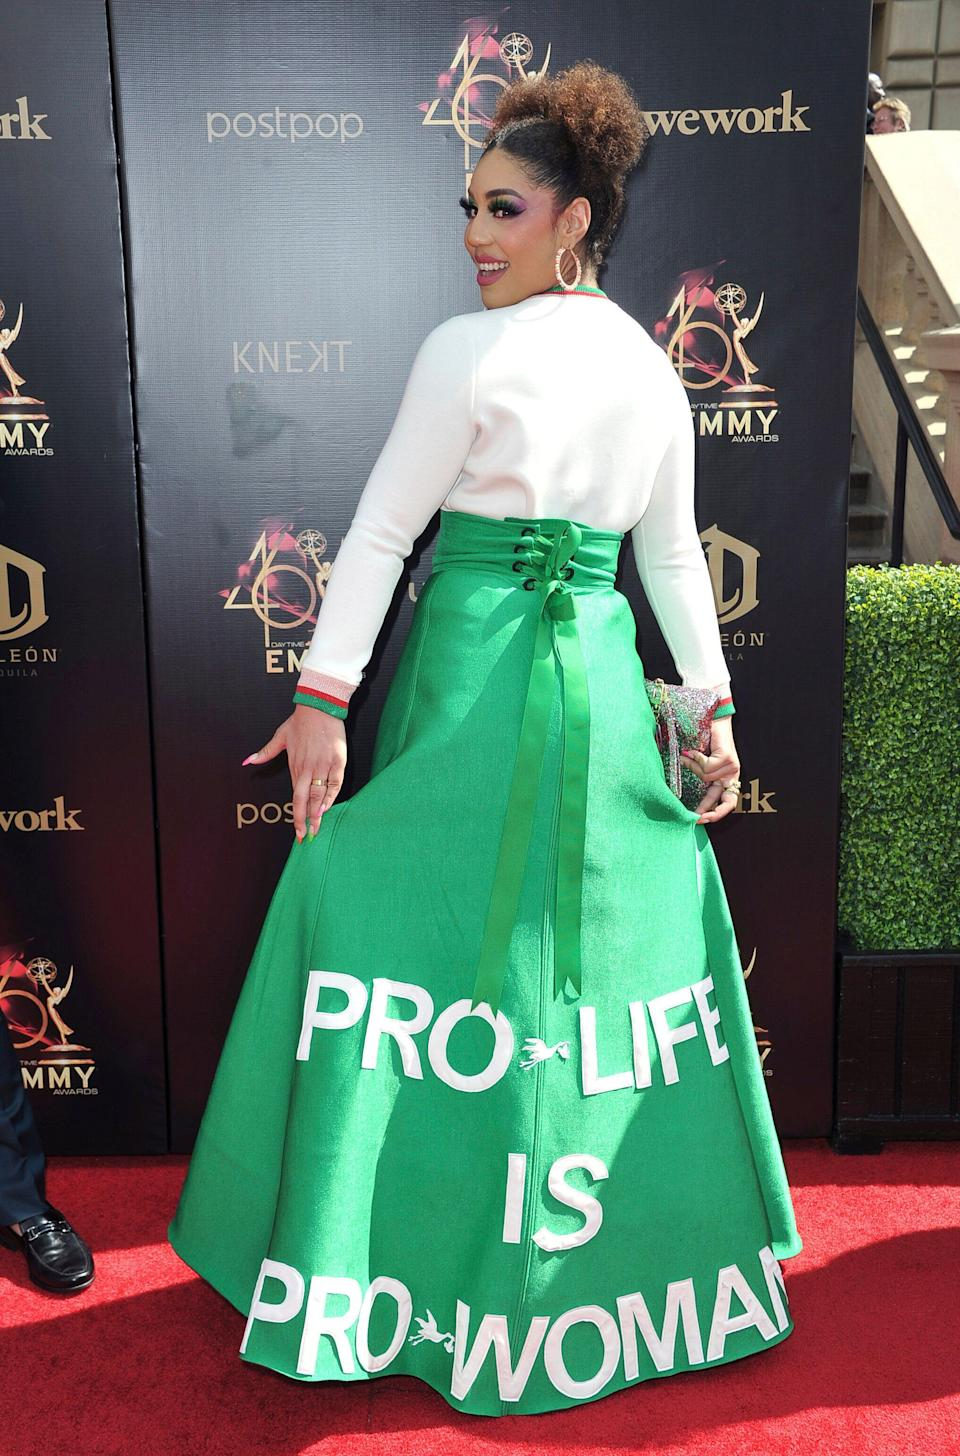 """Joy Villa arrives wearing a dress saying """"Pro-Life Is Pro-Woman"""" at the 46th annual Daytime Emmy Awards at the Pasadena Civic Center, Sunday, May 5, 2019, in Pasadena, Calif. (Photo by Richard Shotwell/Invision/AP)"""